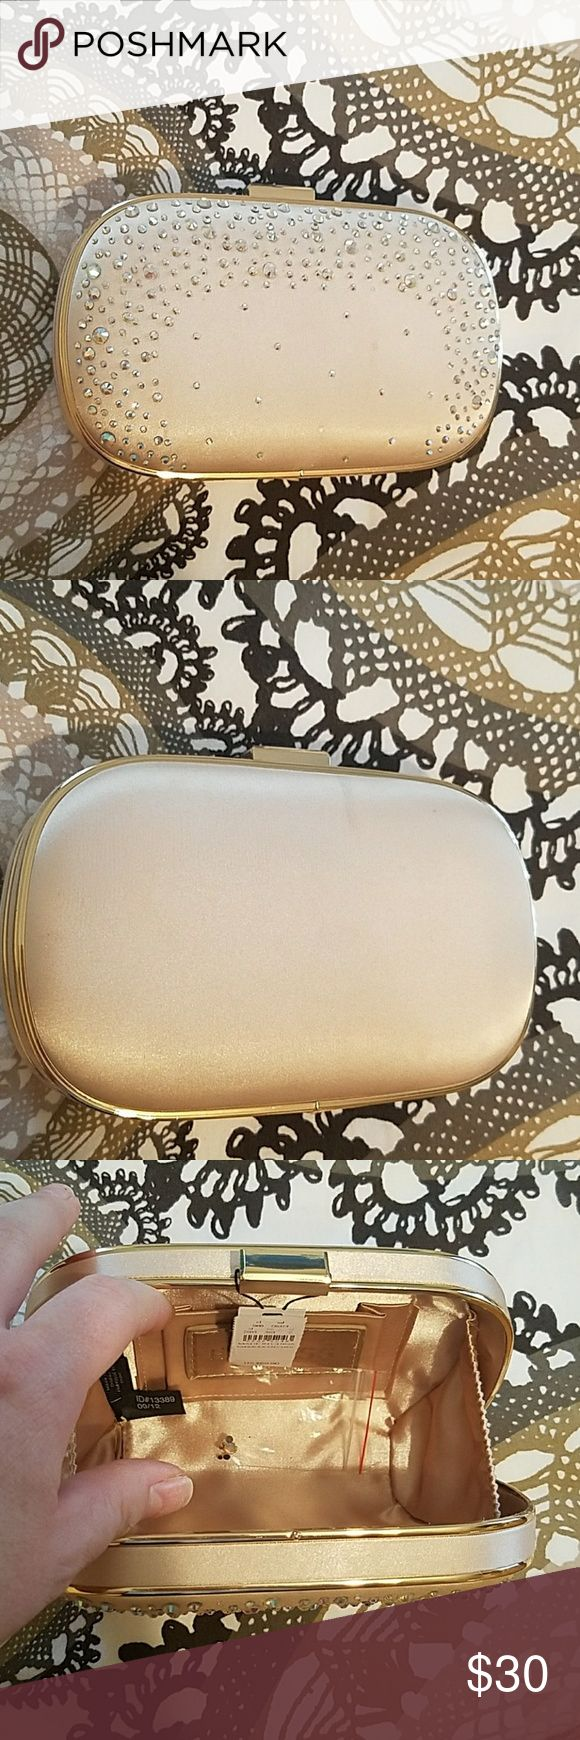 Gold Express Clutch Light Gold Color, Special Occasion Bag Express Bags Clutches & Wristlets